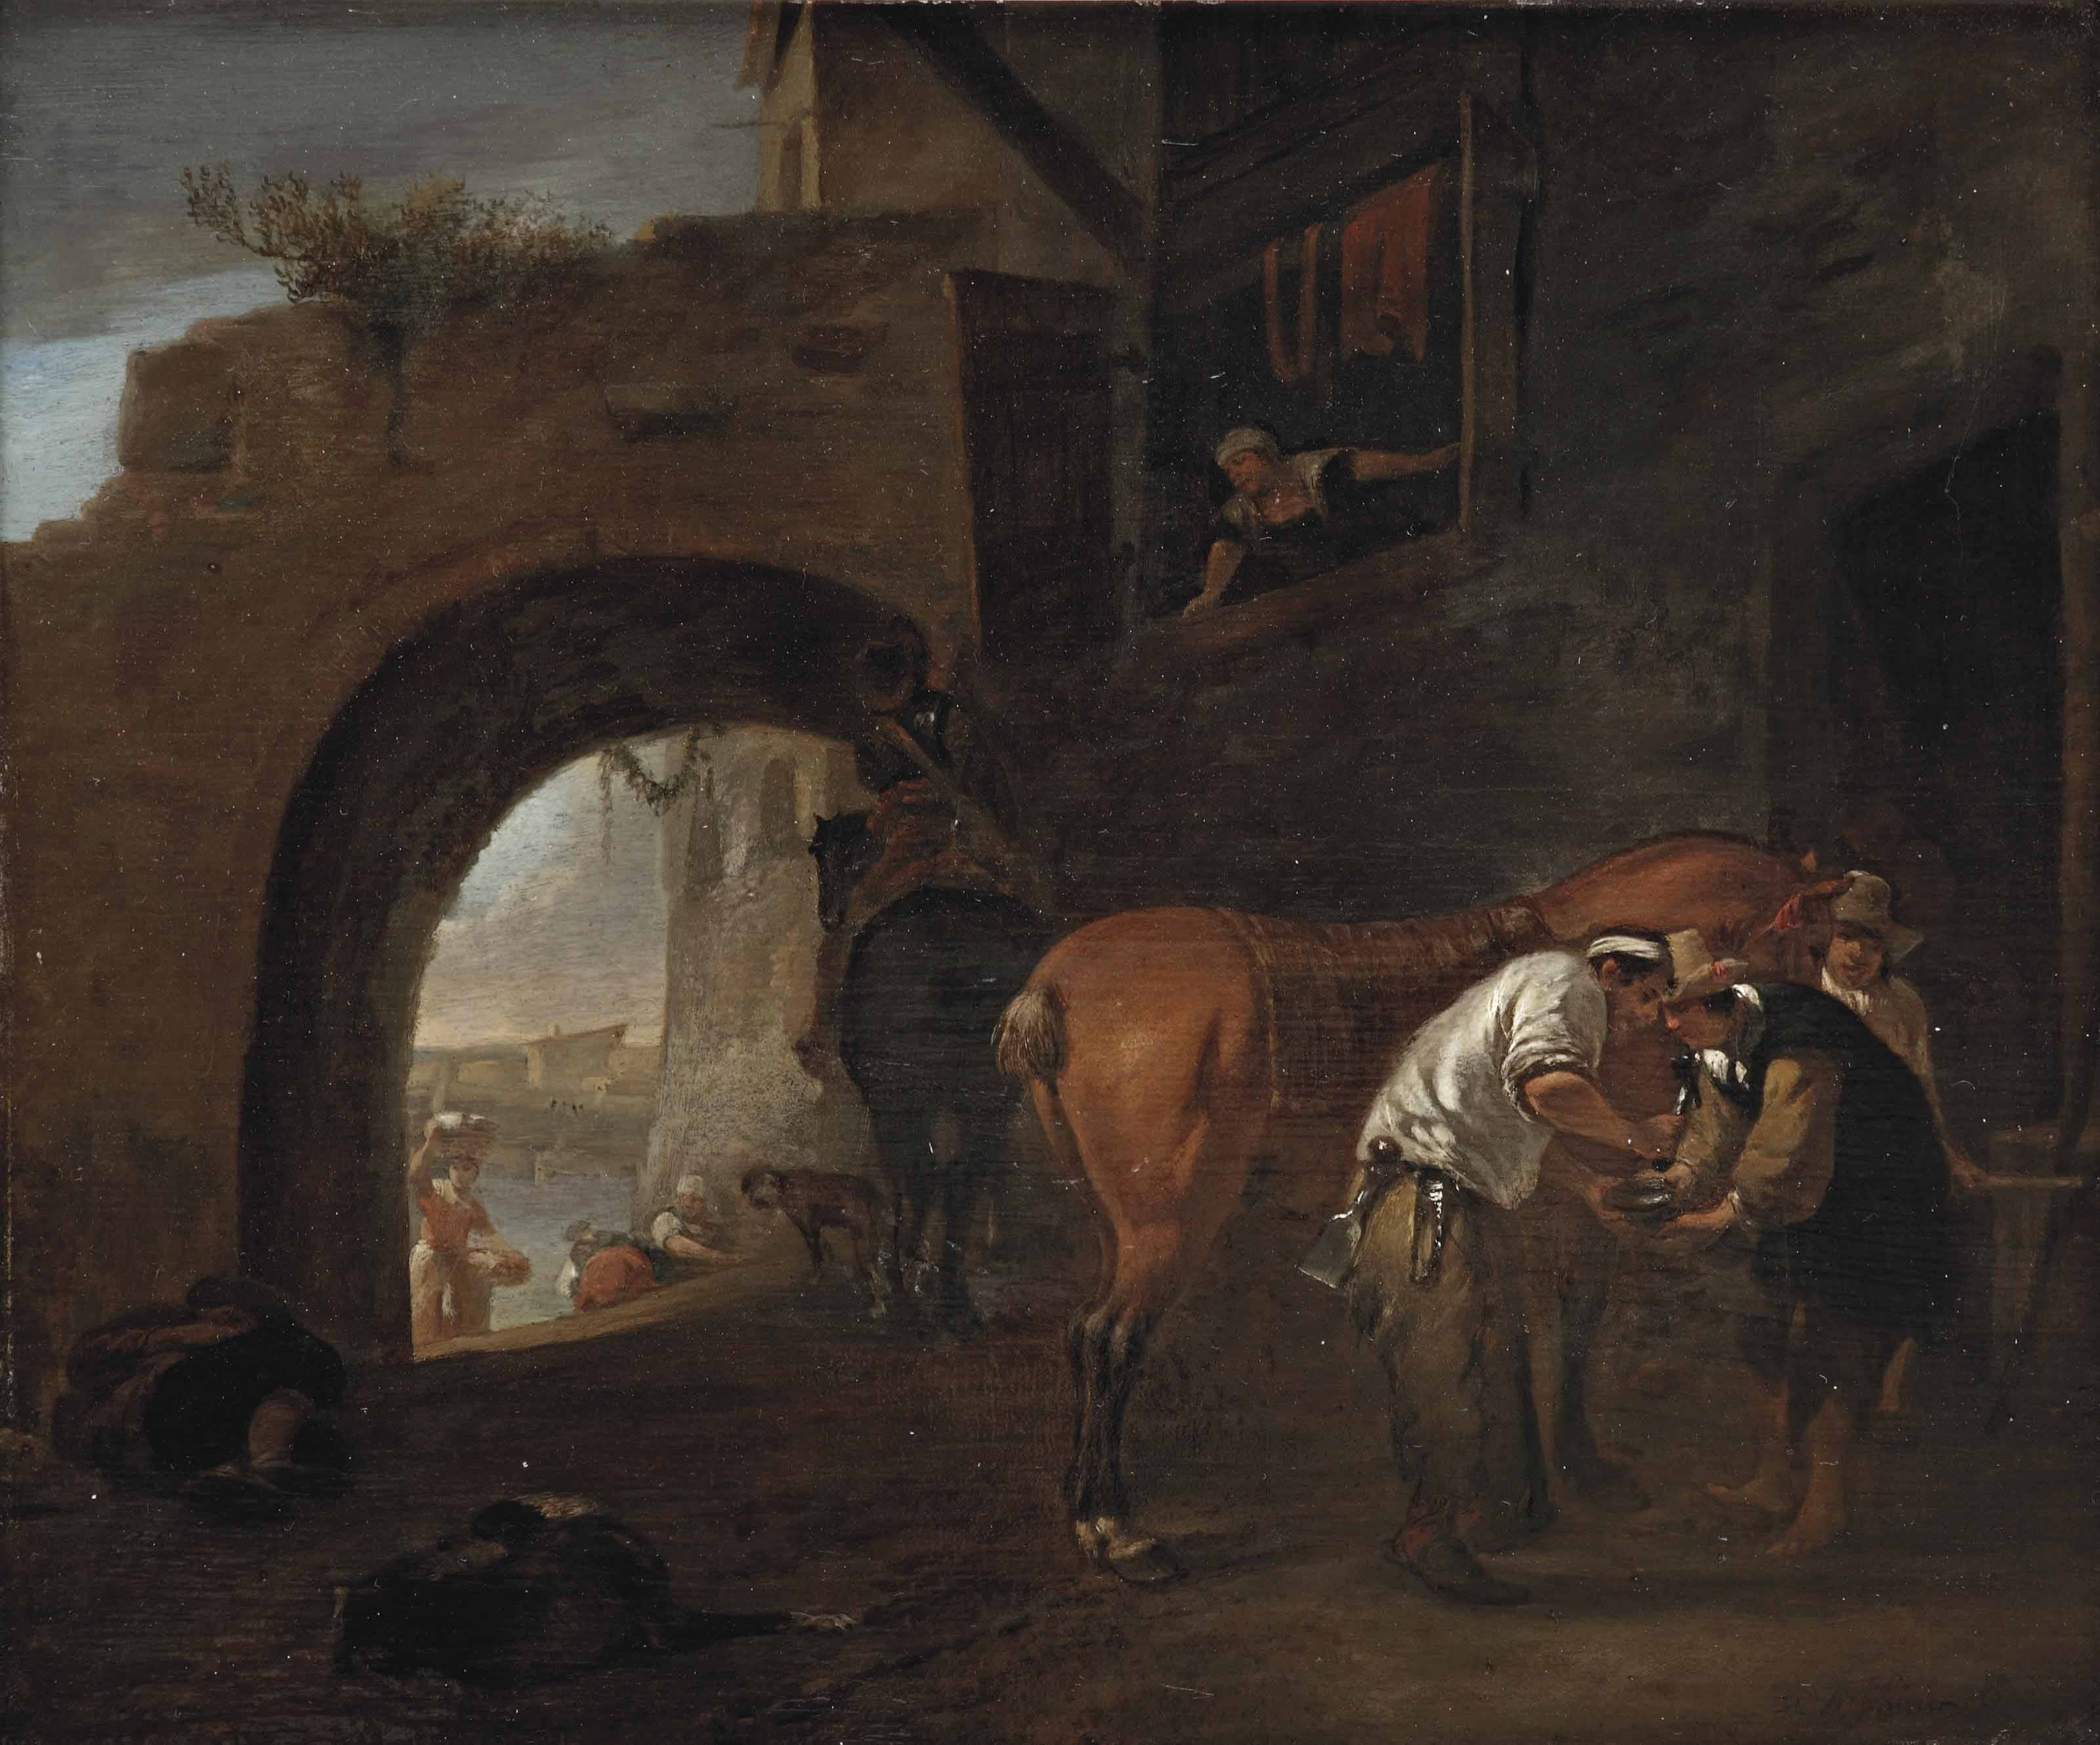 A blacksmith on the outskirts of a city wall, an Italianate river landscape beyond the archway